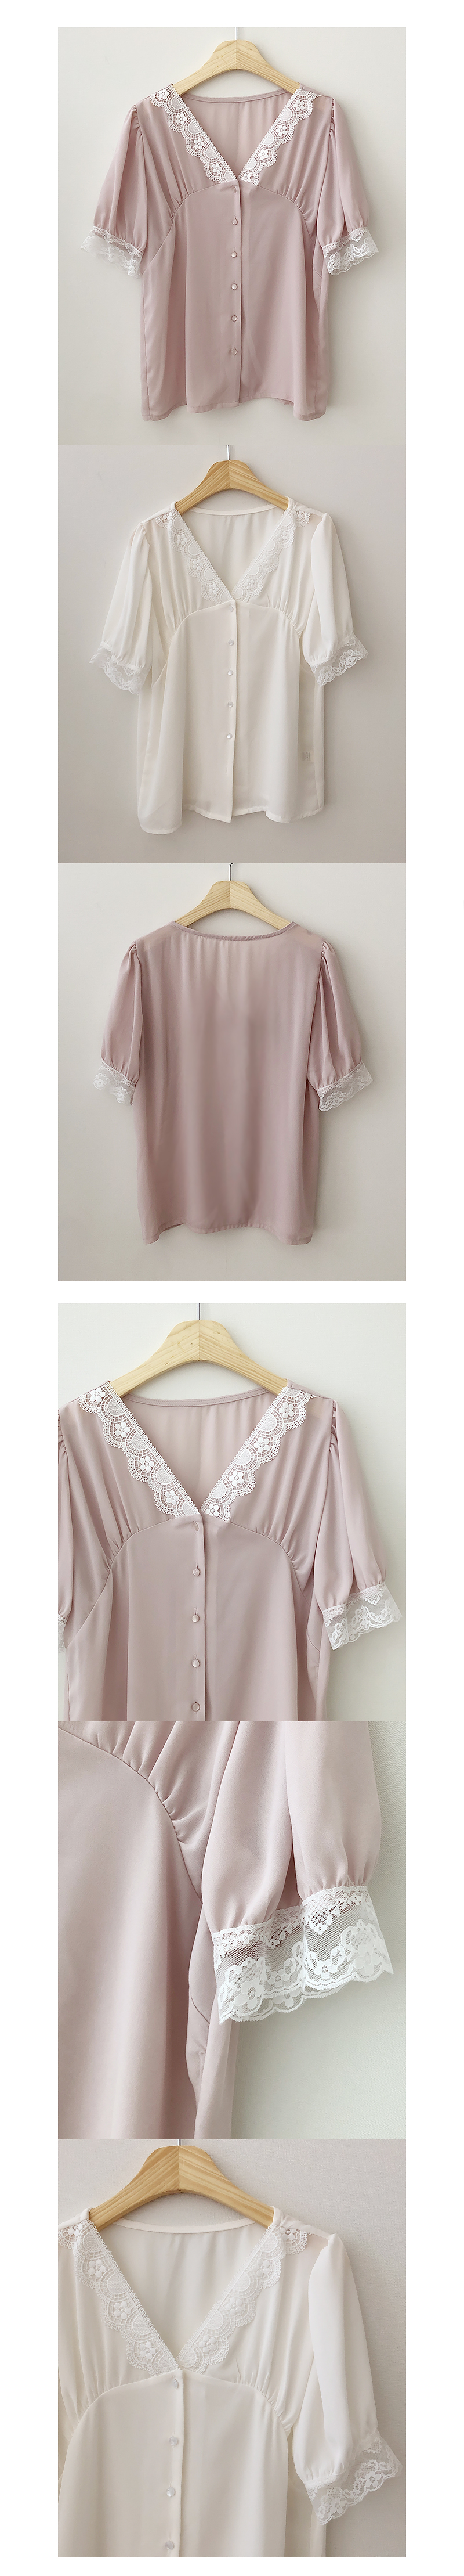 Montshell Lace Pintuck Blouse